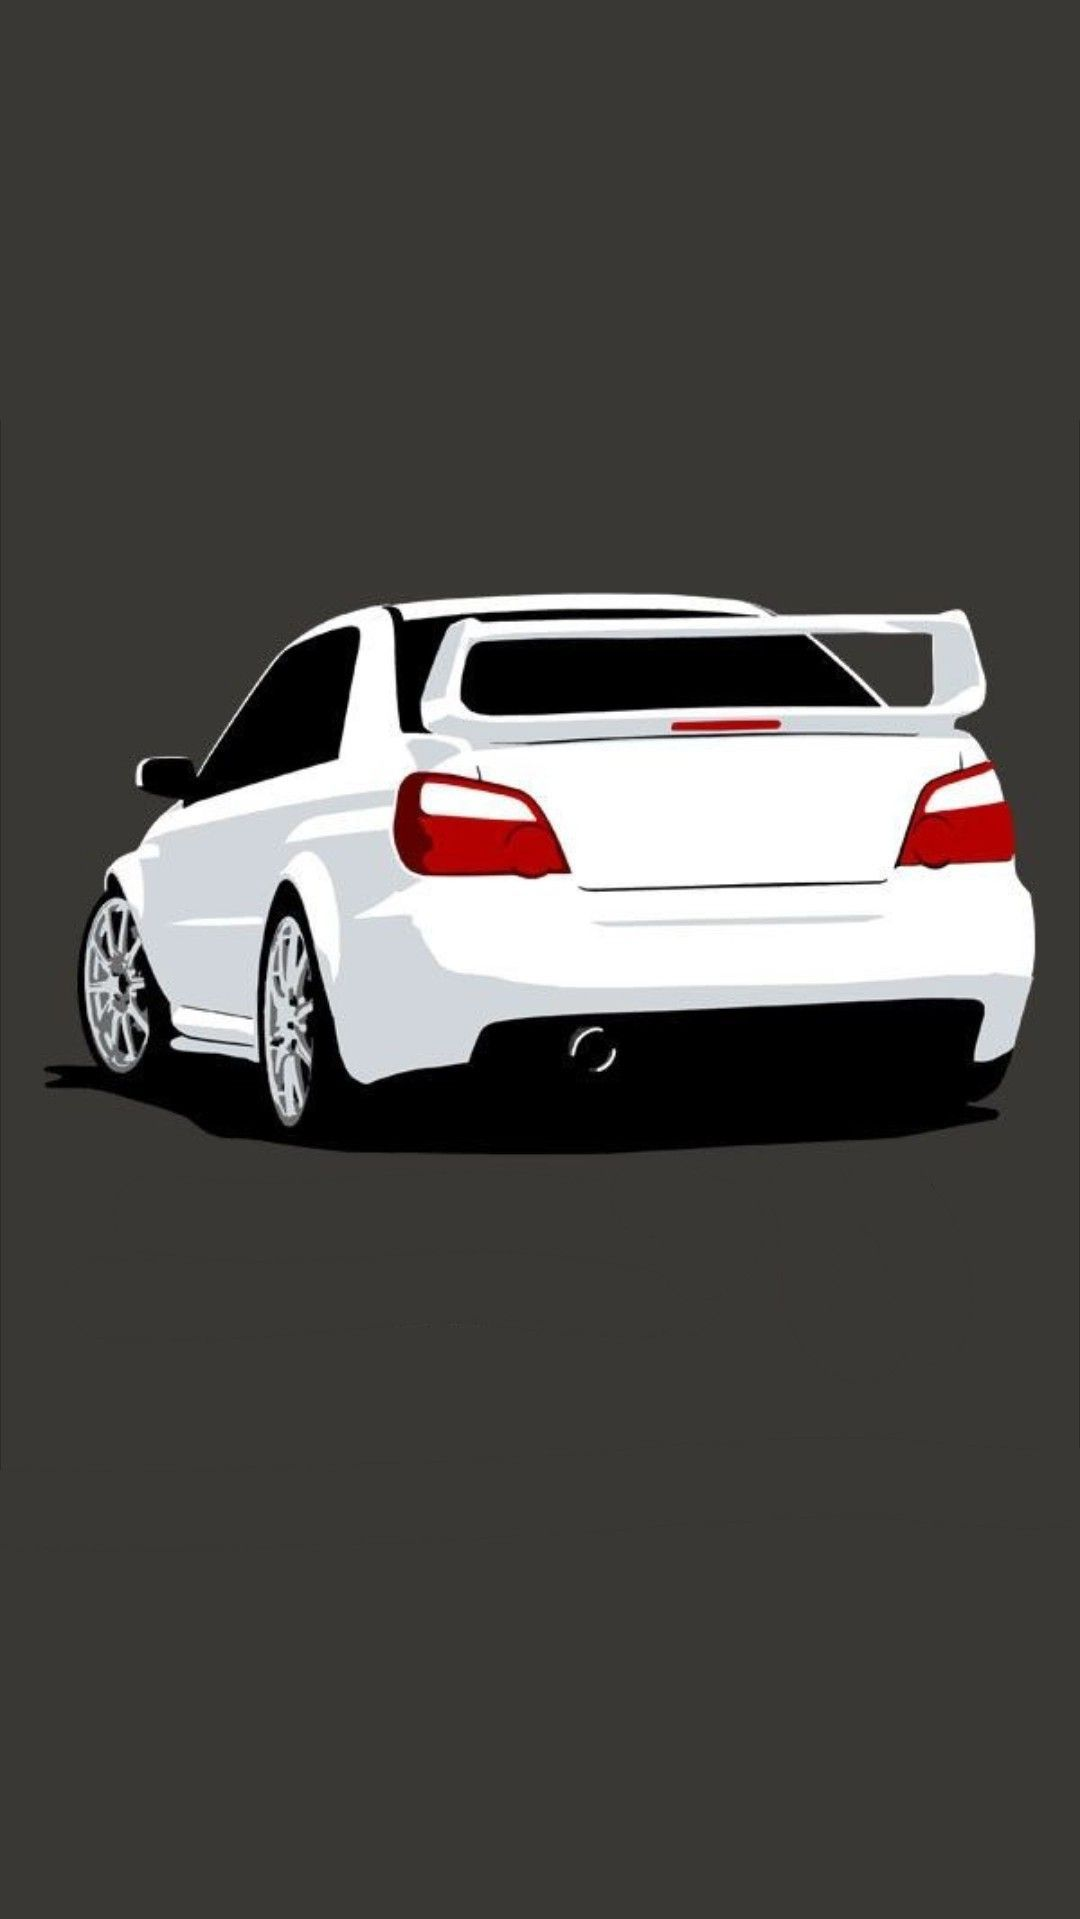 Simple Art Wallpaper Iphonewallpaper Cars Car Iphone Wallpaper